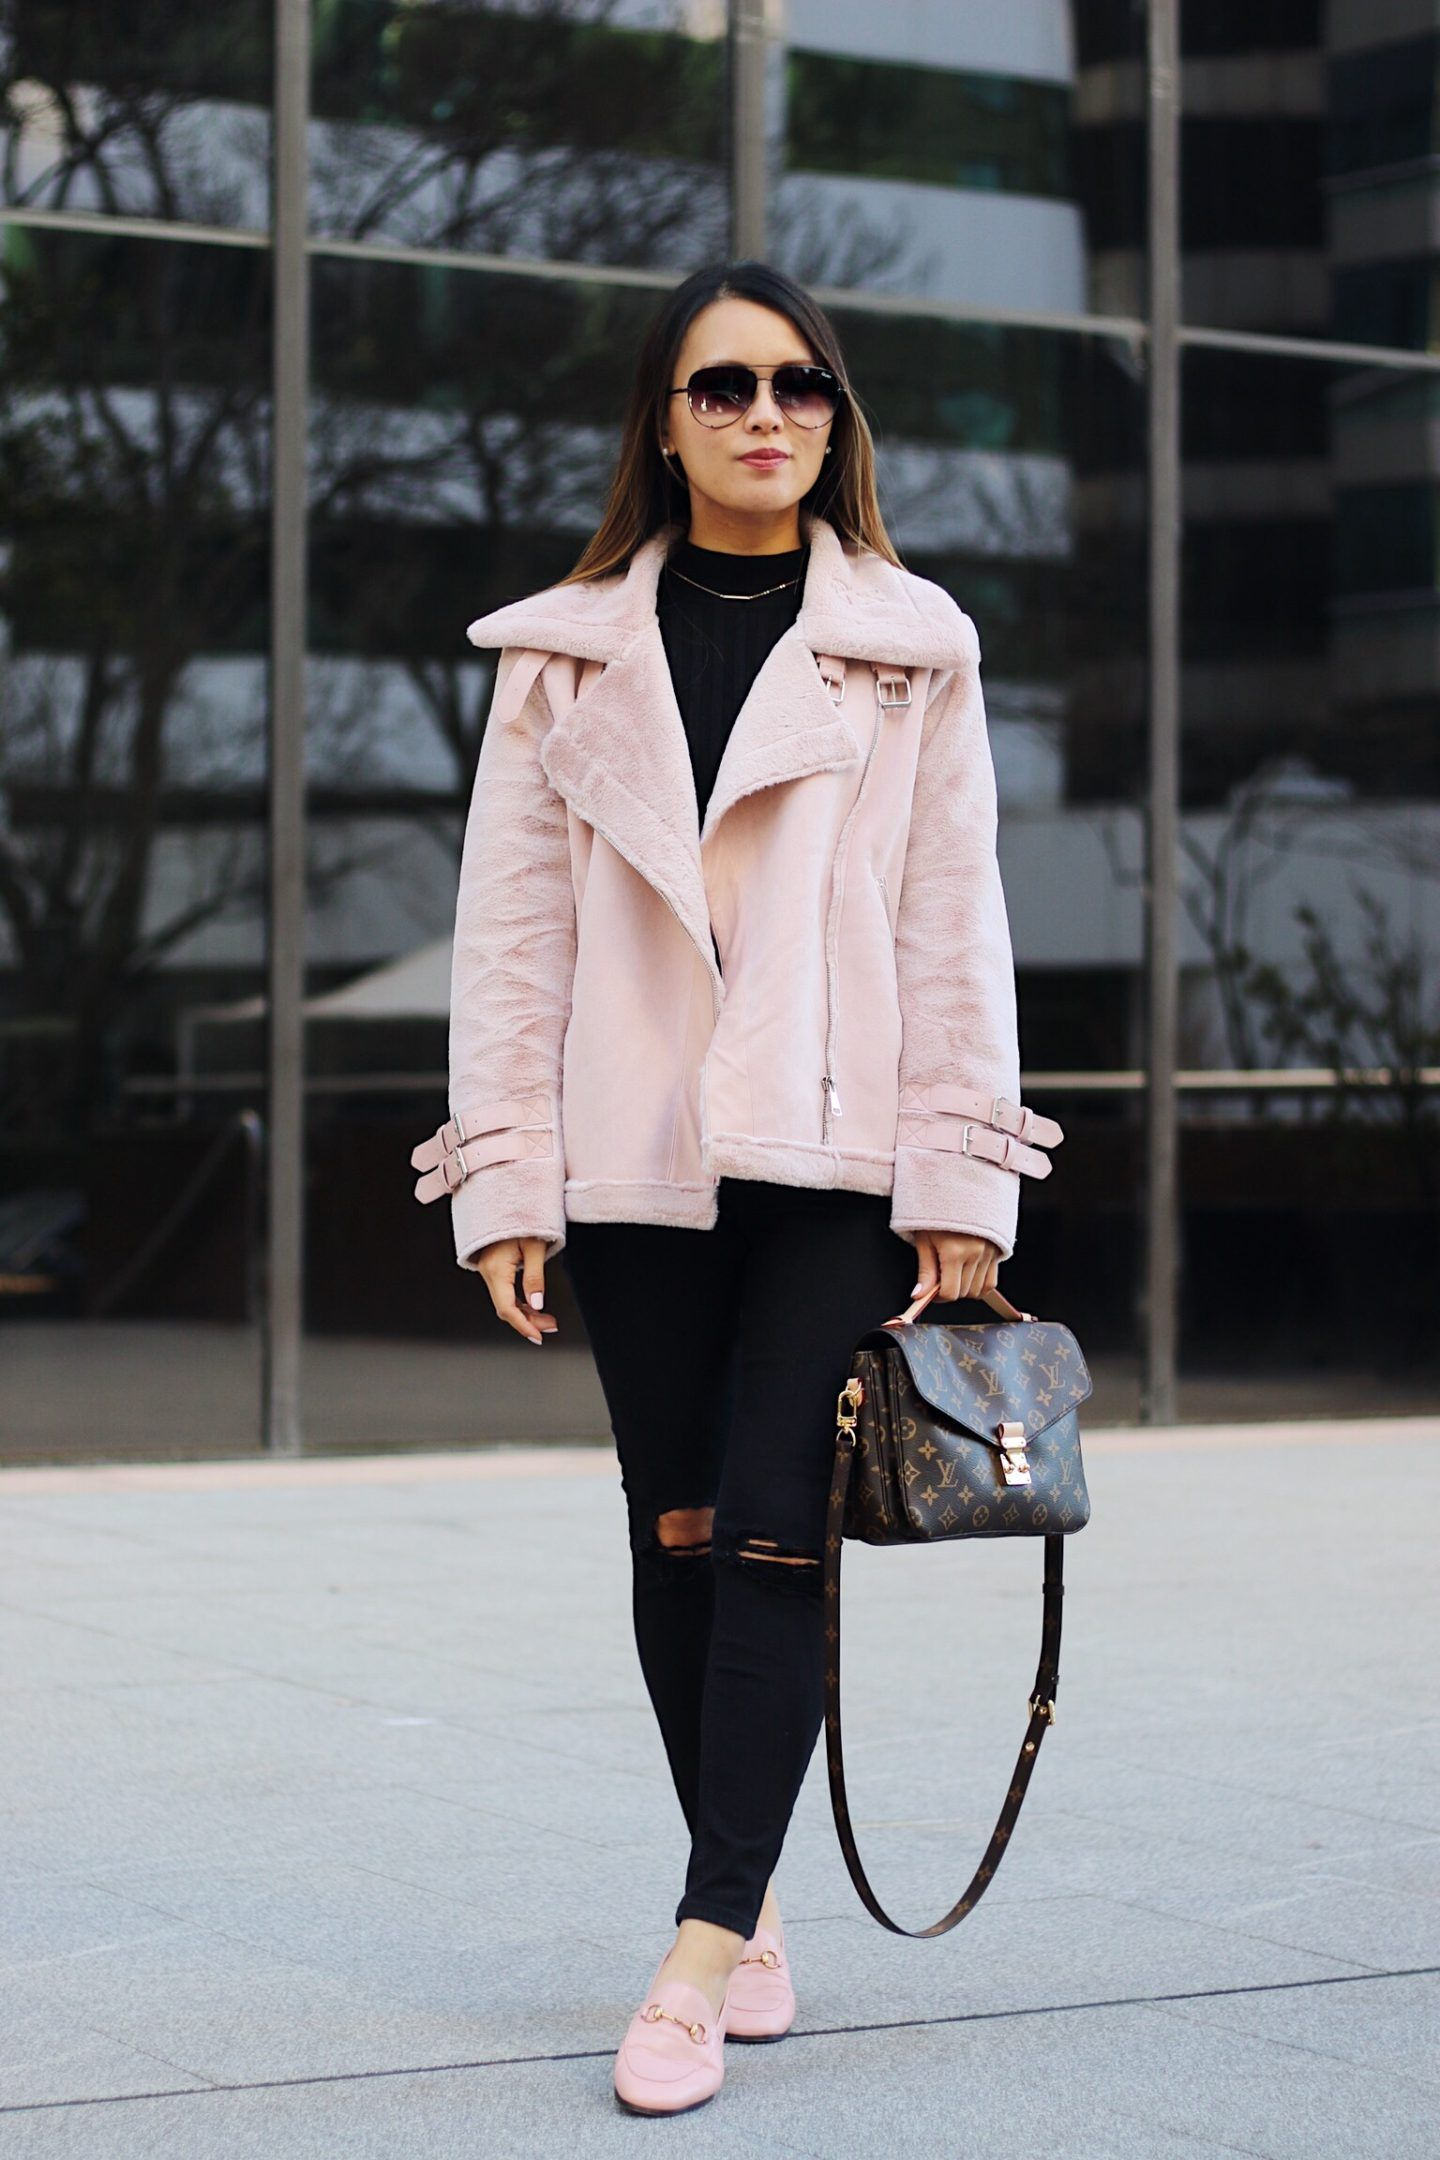 d5a48142e35 Cosiest blush fur jacket and new journey starting a YouTube channel ...